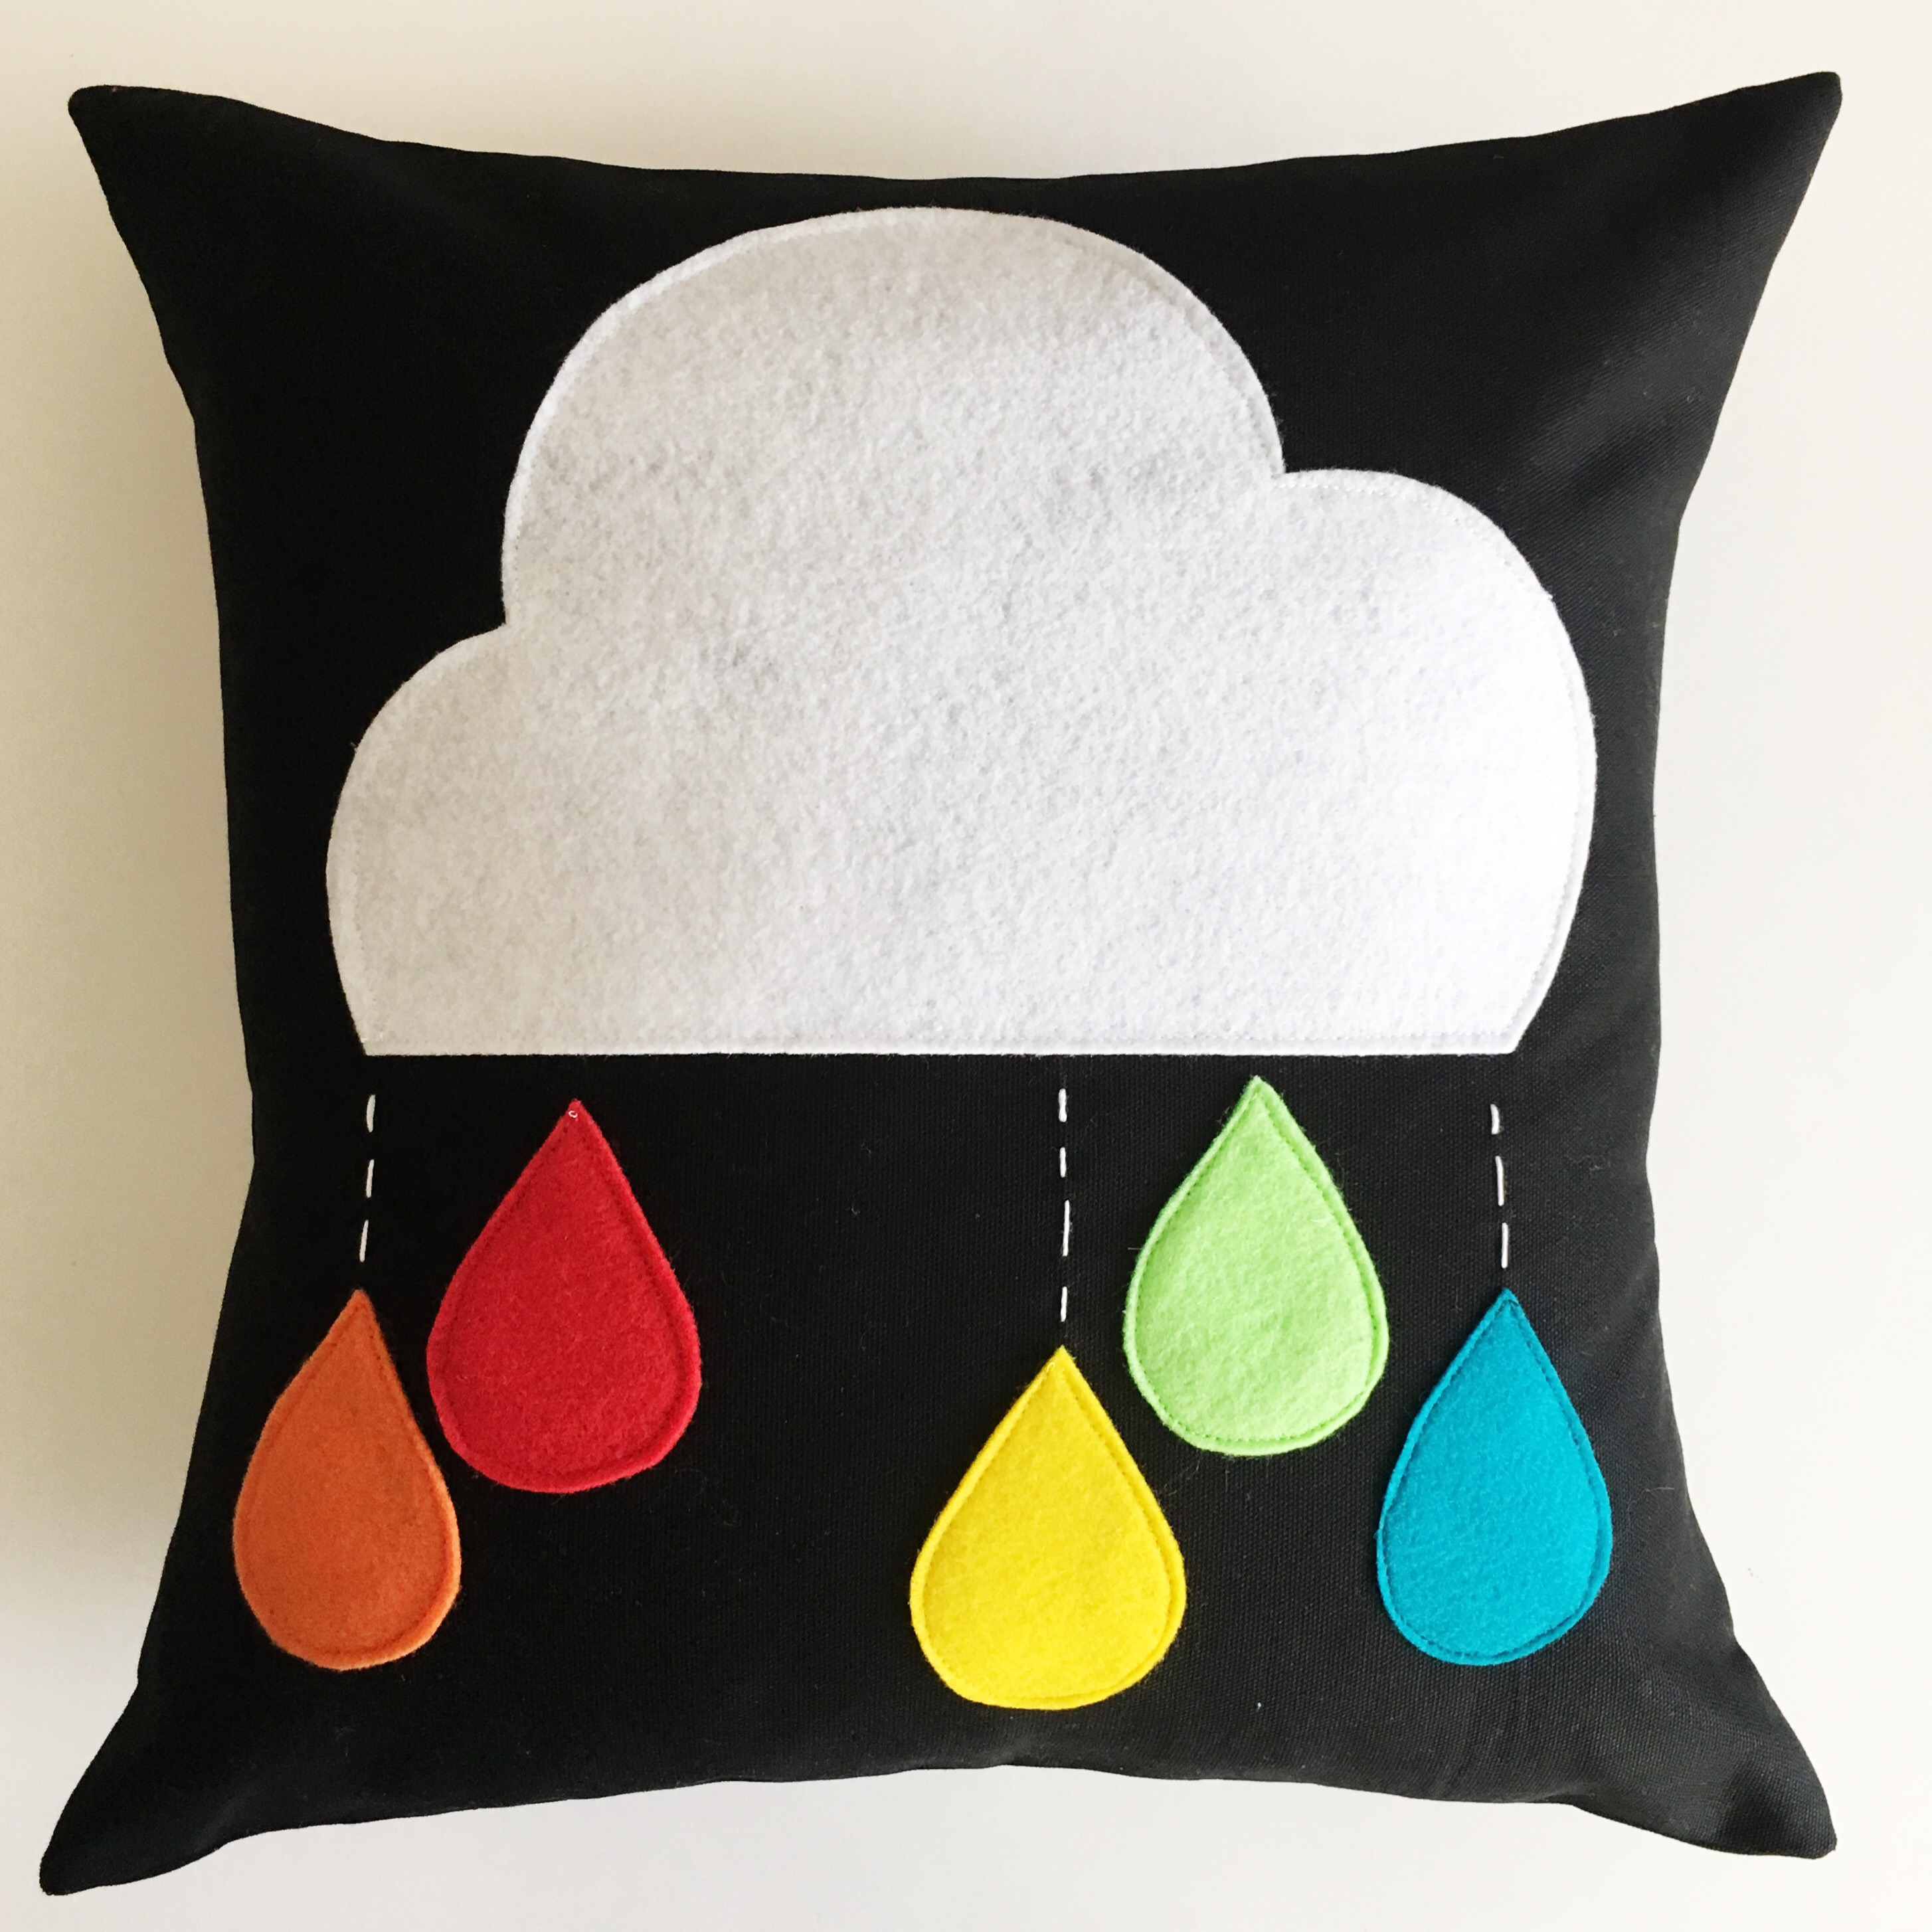 How To Make A Cloud With Raindrops Pillow Simple Simon